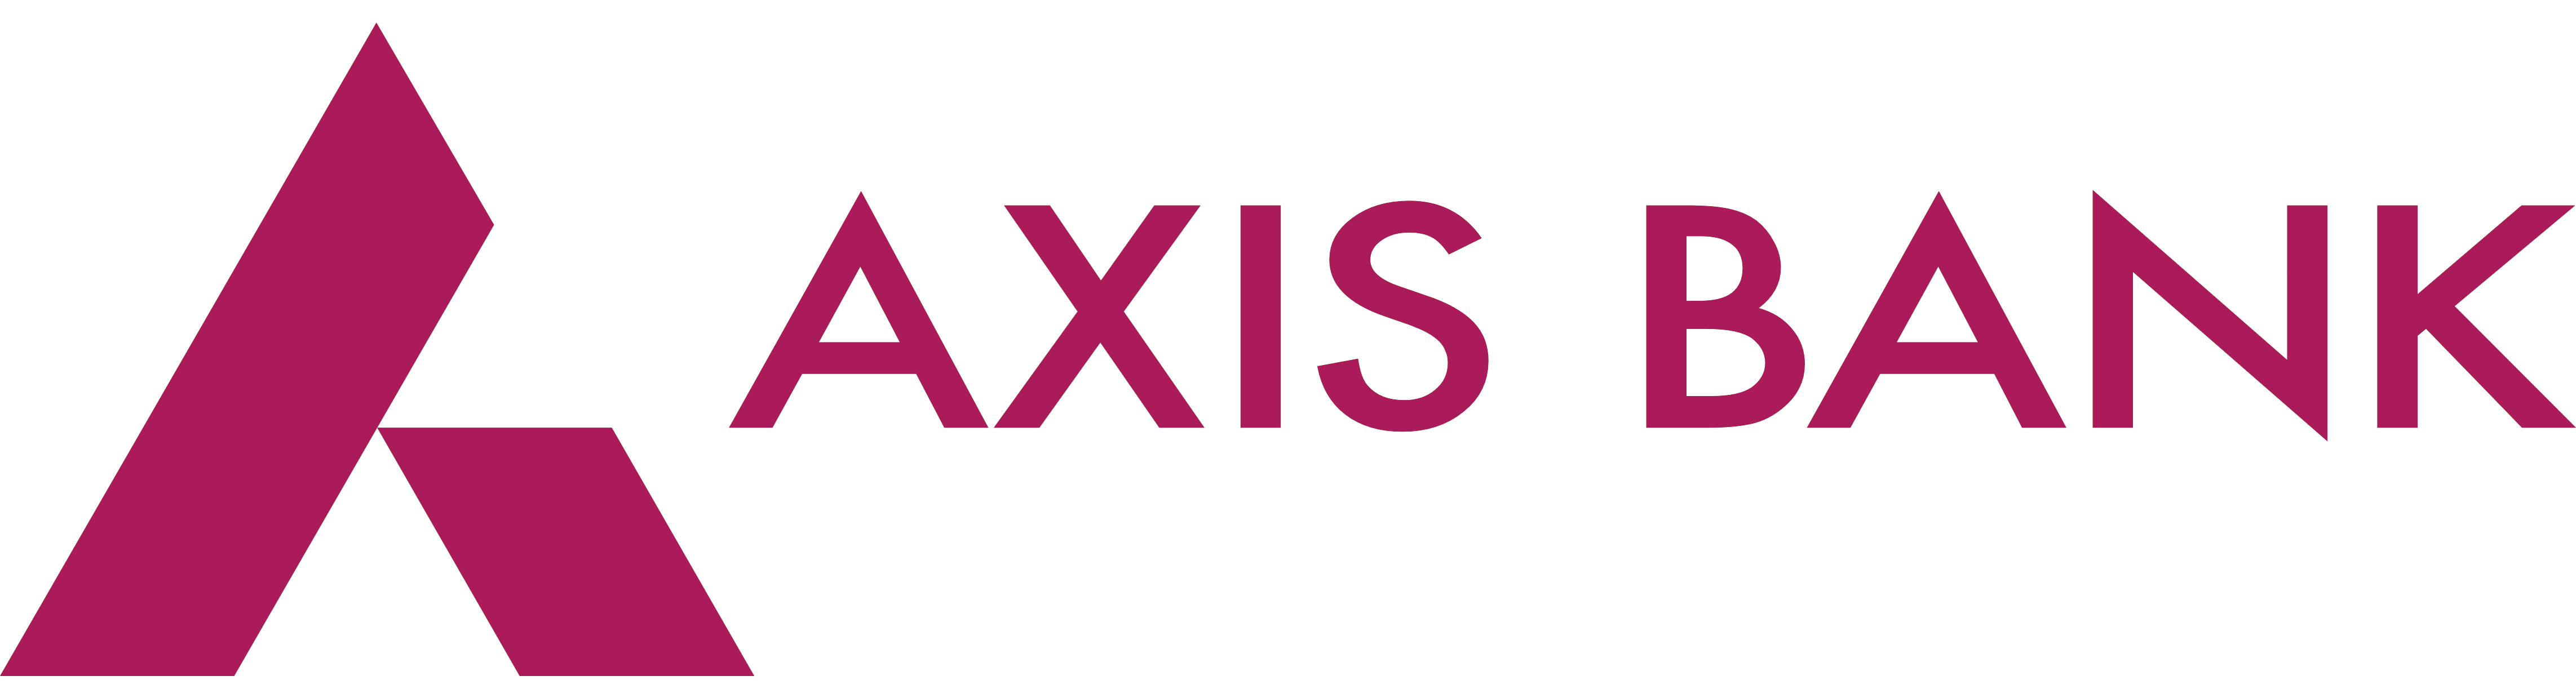 Axis_Bank_logo_logotype